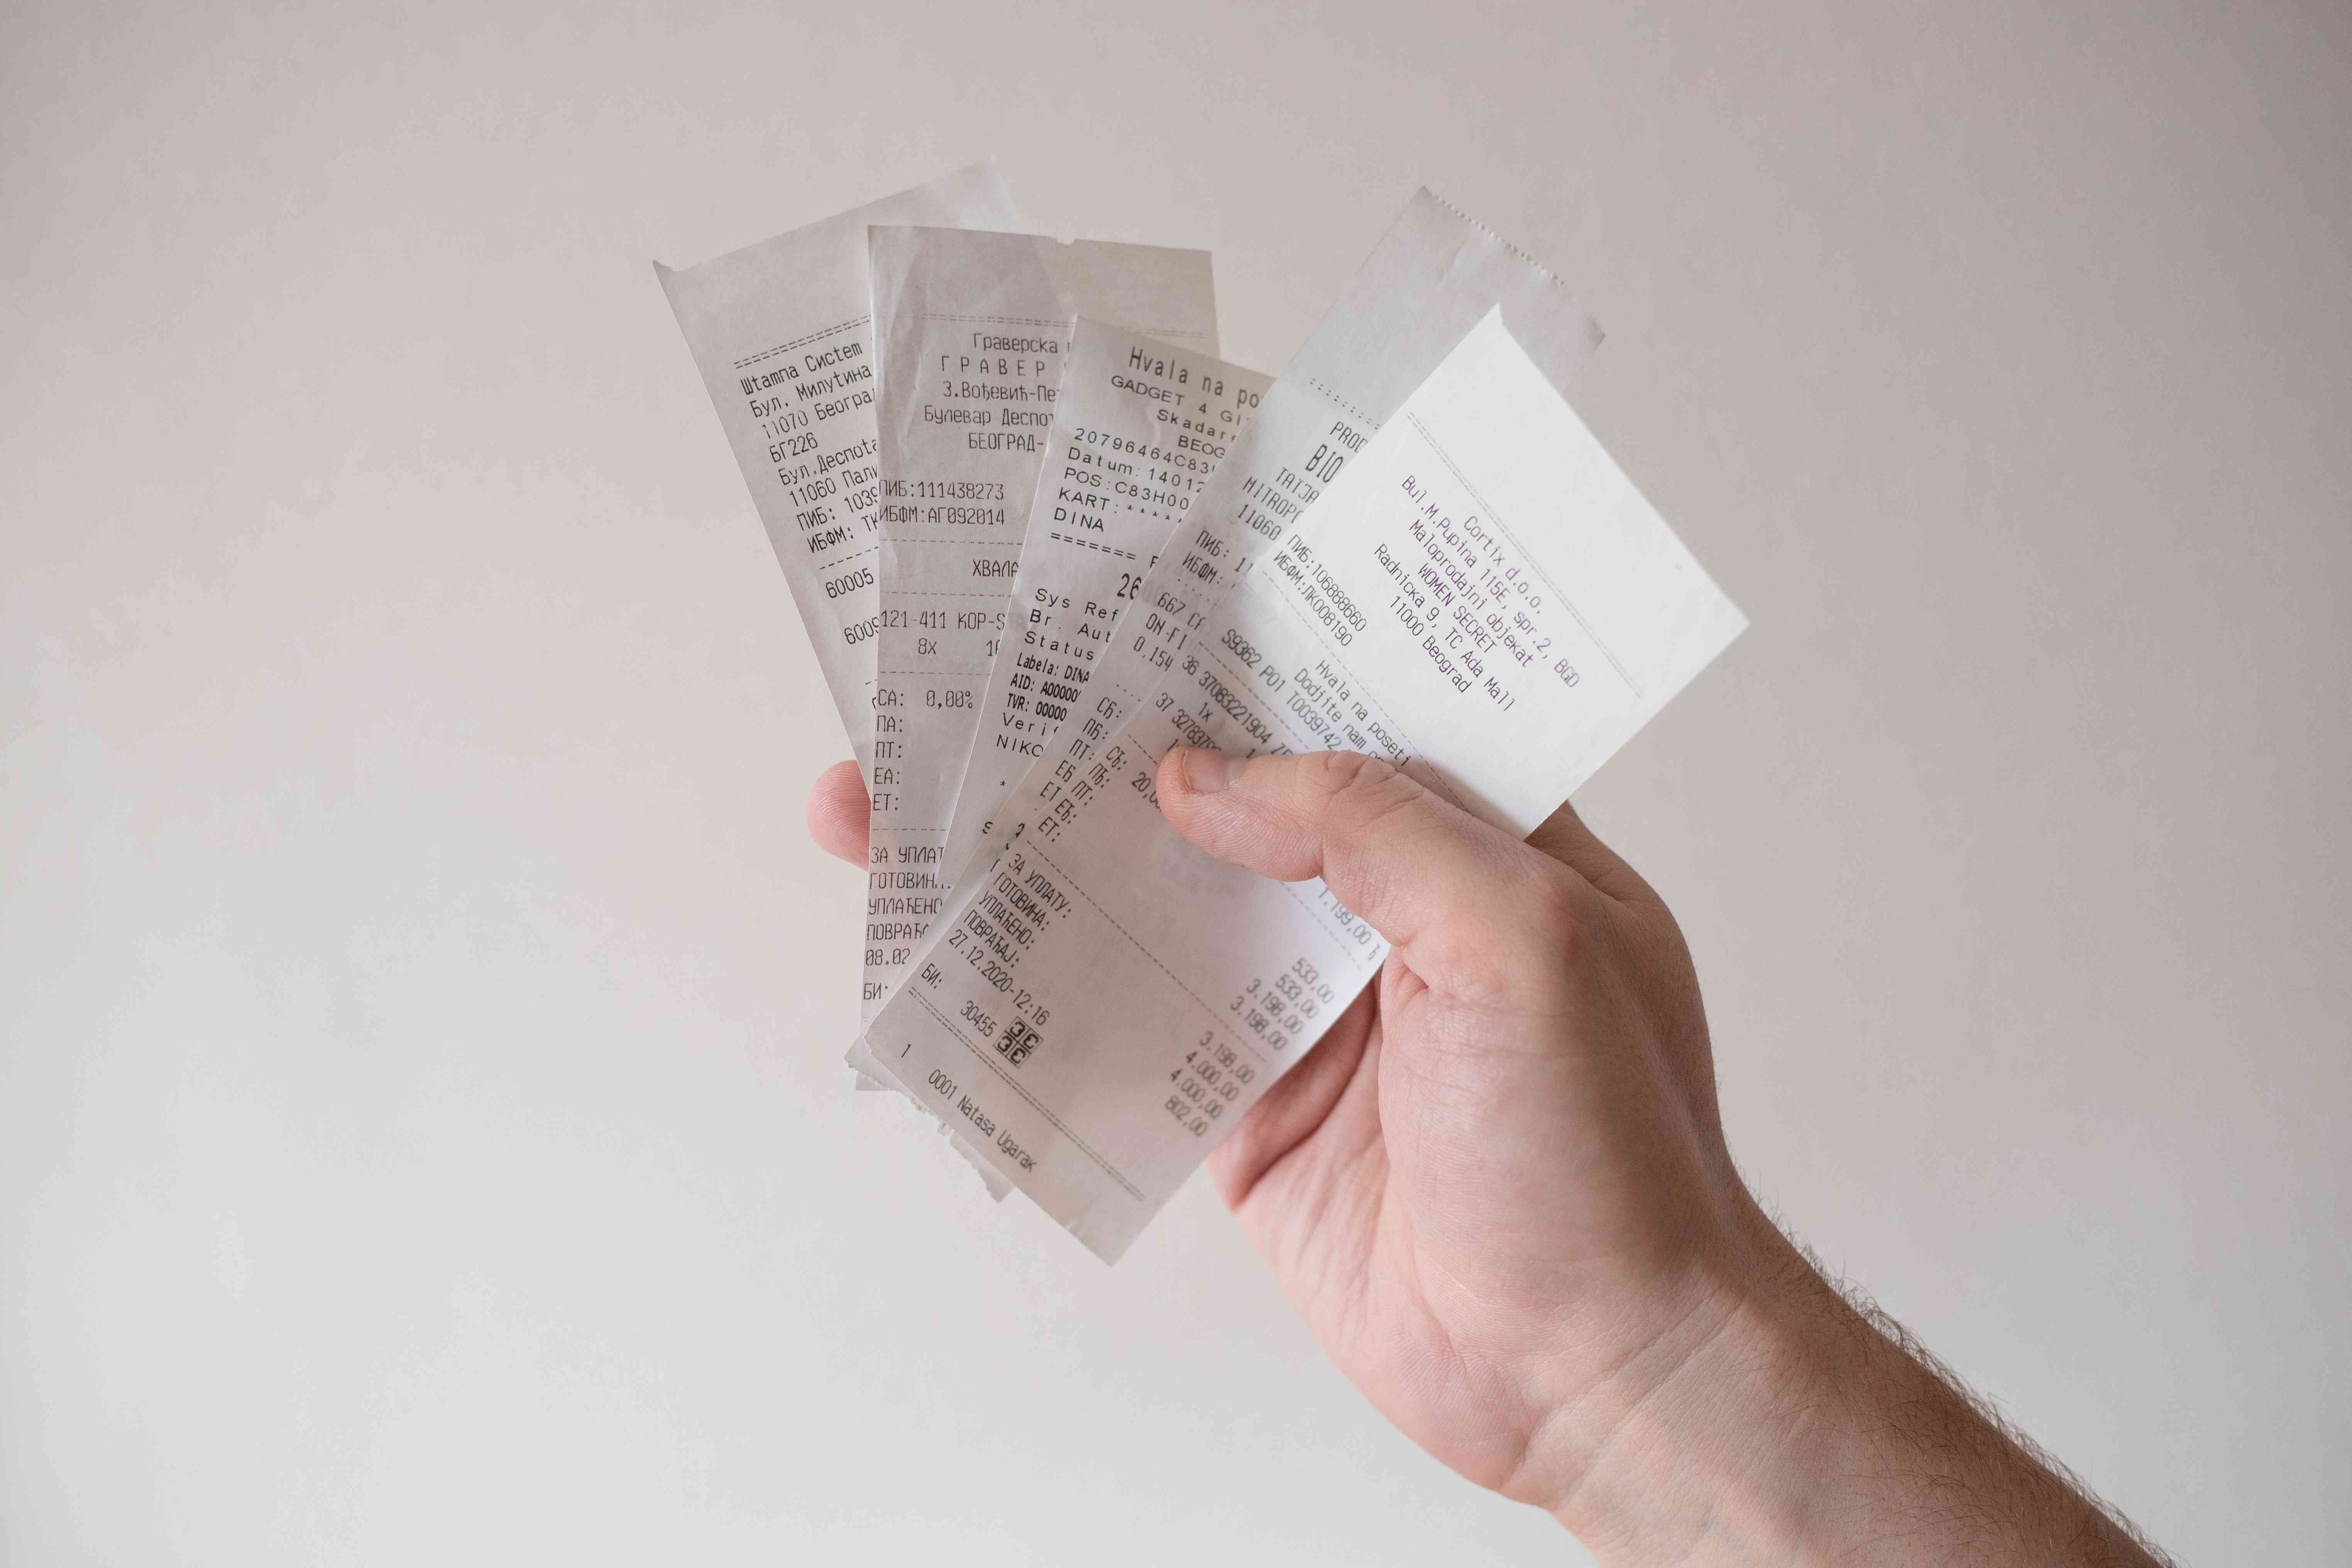 hand holds multiple receipts against blank white wall